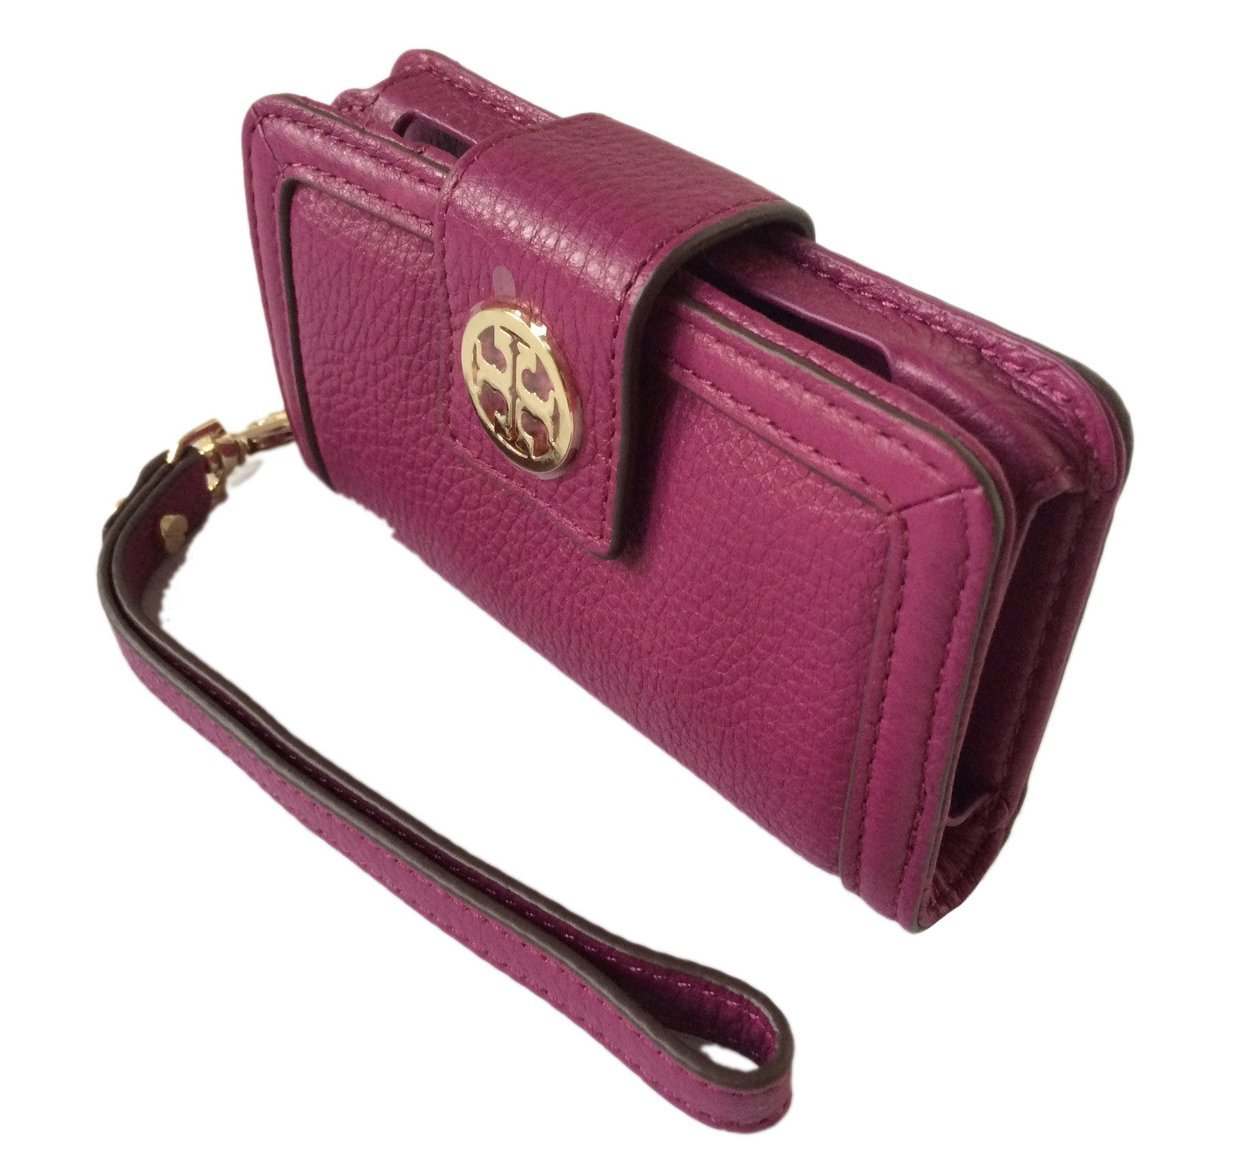 82c7ff176c33 Tory Burch Amanda Smart Phone Wallet in Fuchsia Leather (FOR iPhone 4)